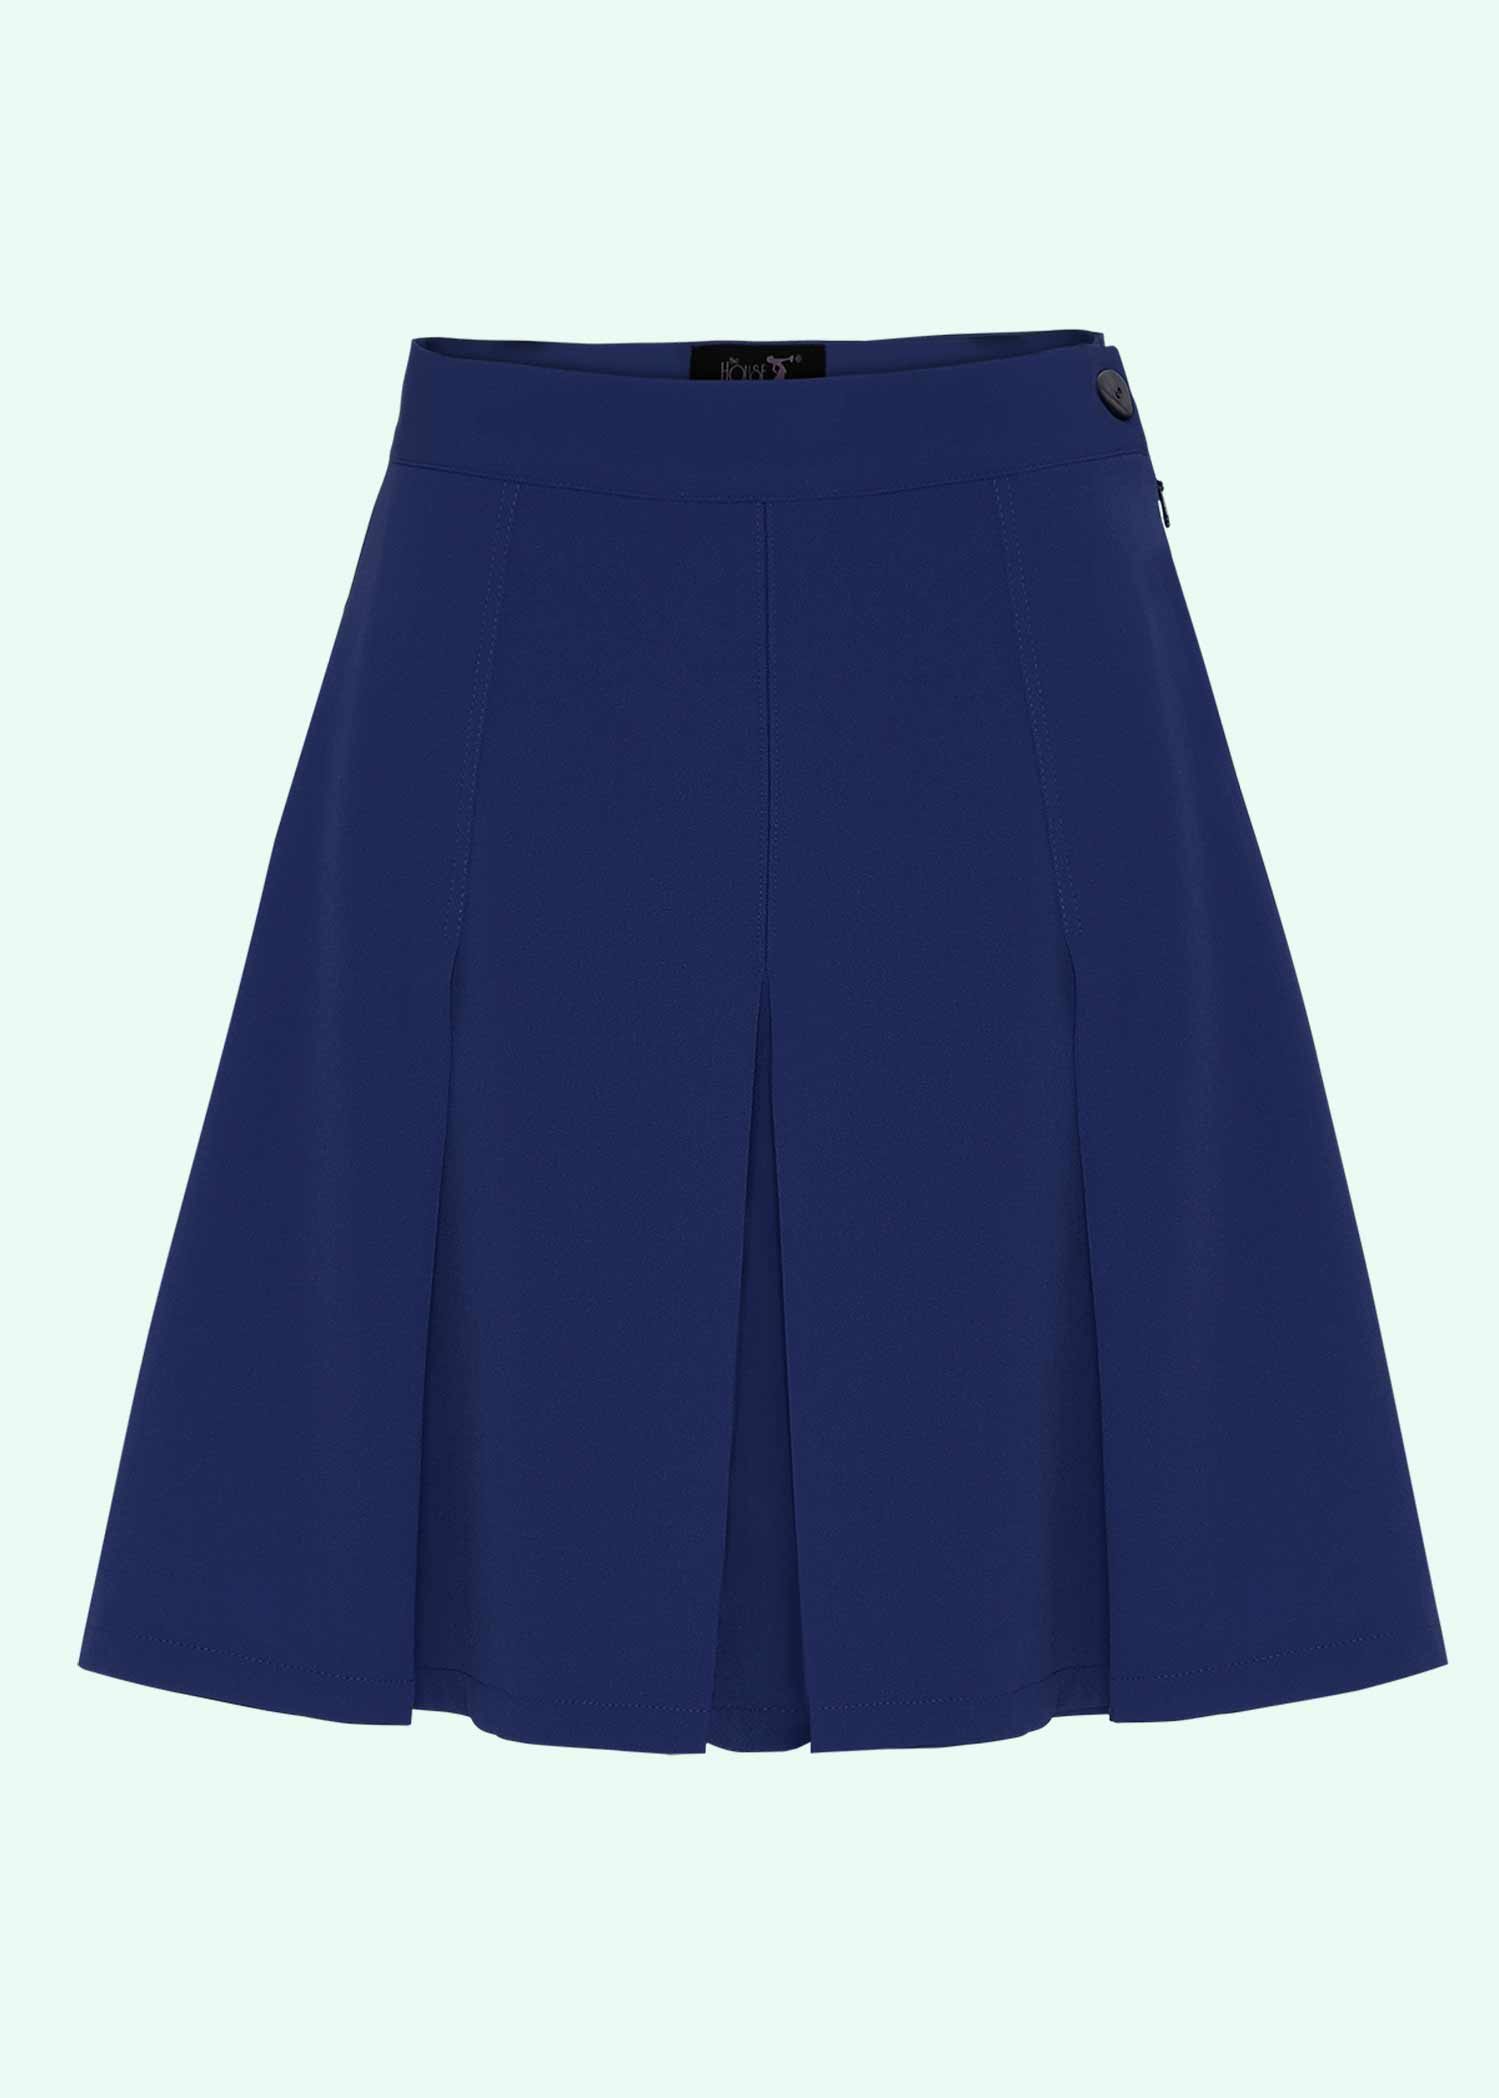 Navy blå 40er vintage stils plisserede shorts fra The House Of Foxy